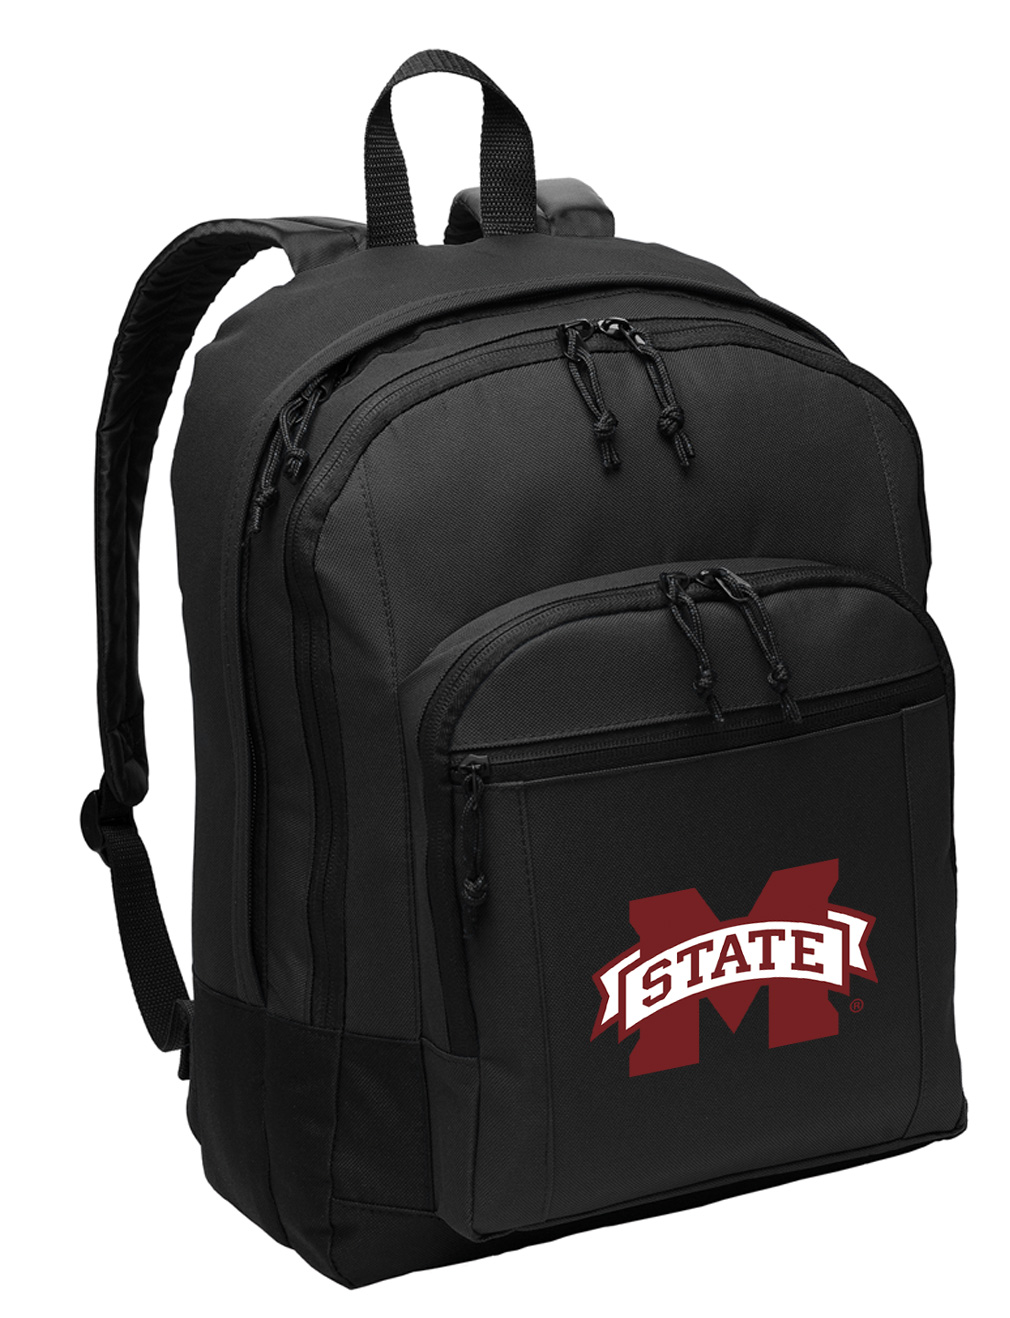 Broad Bay Middle Tennessee Backpack MT Computer Bag